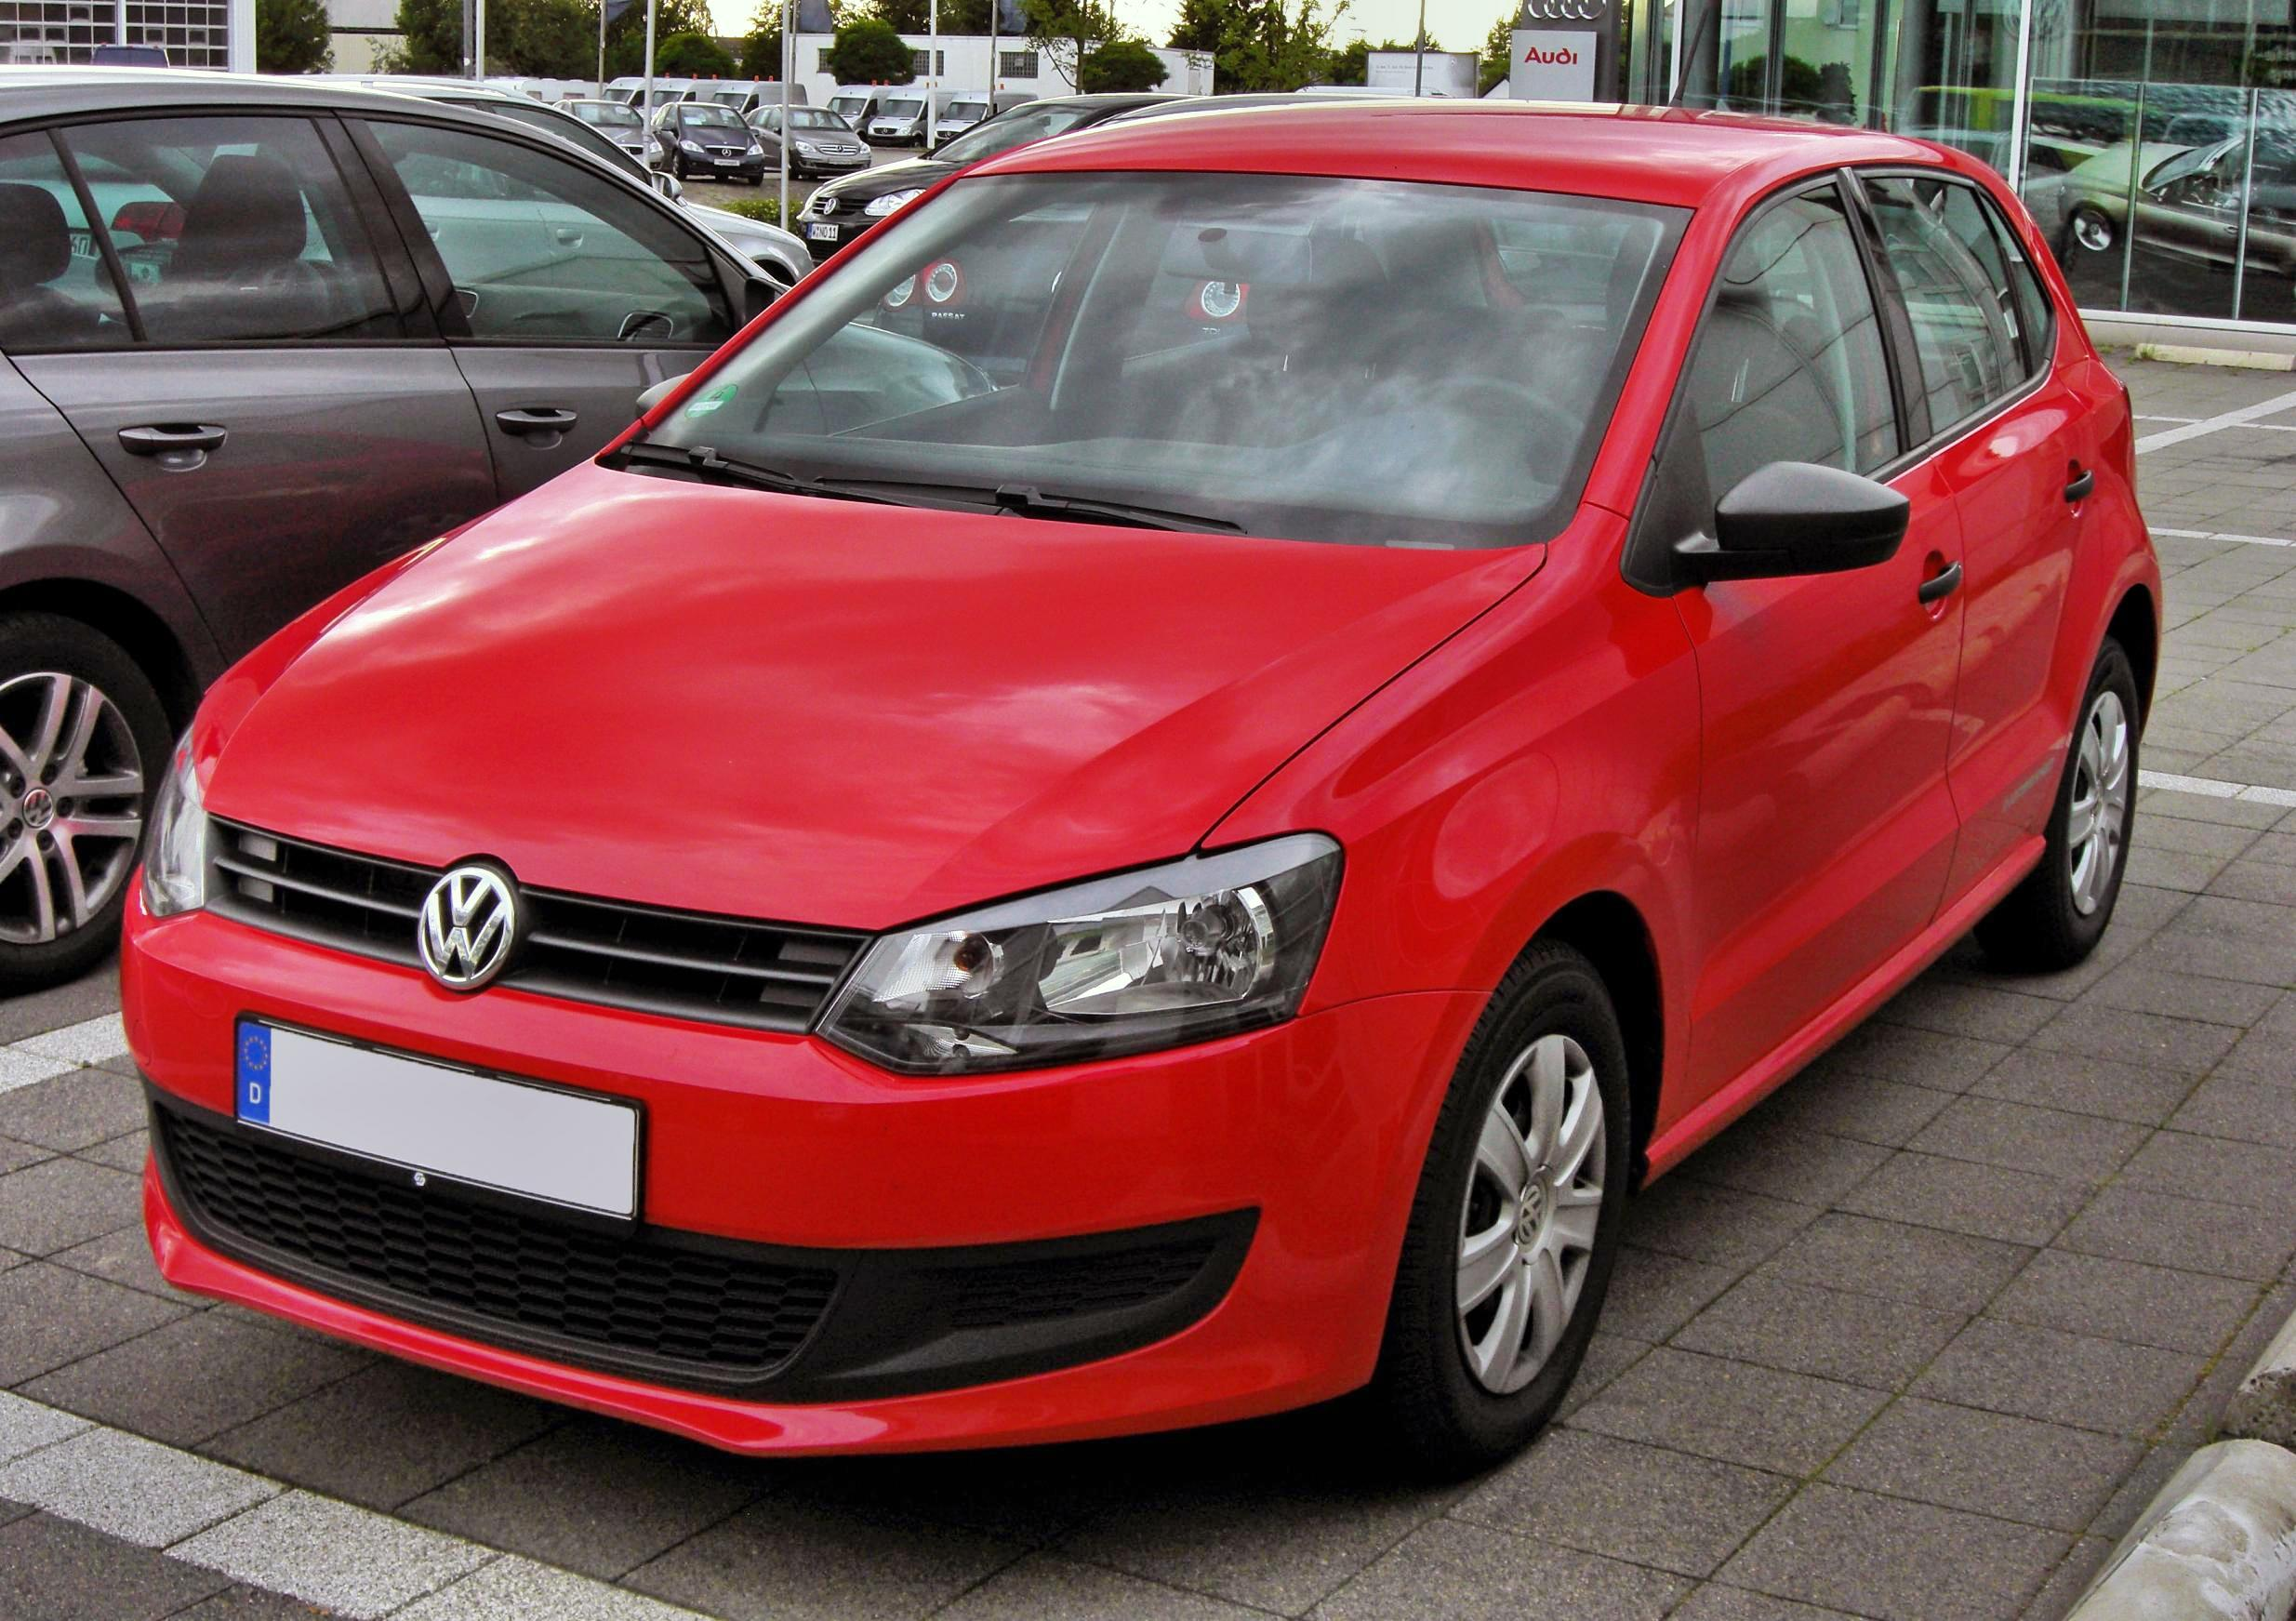 Description VW Polo V 20090717 front.JPG